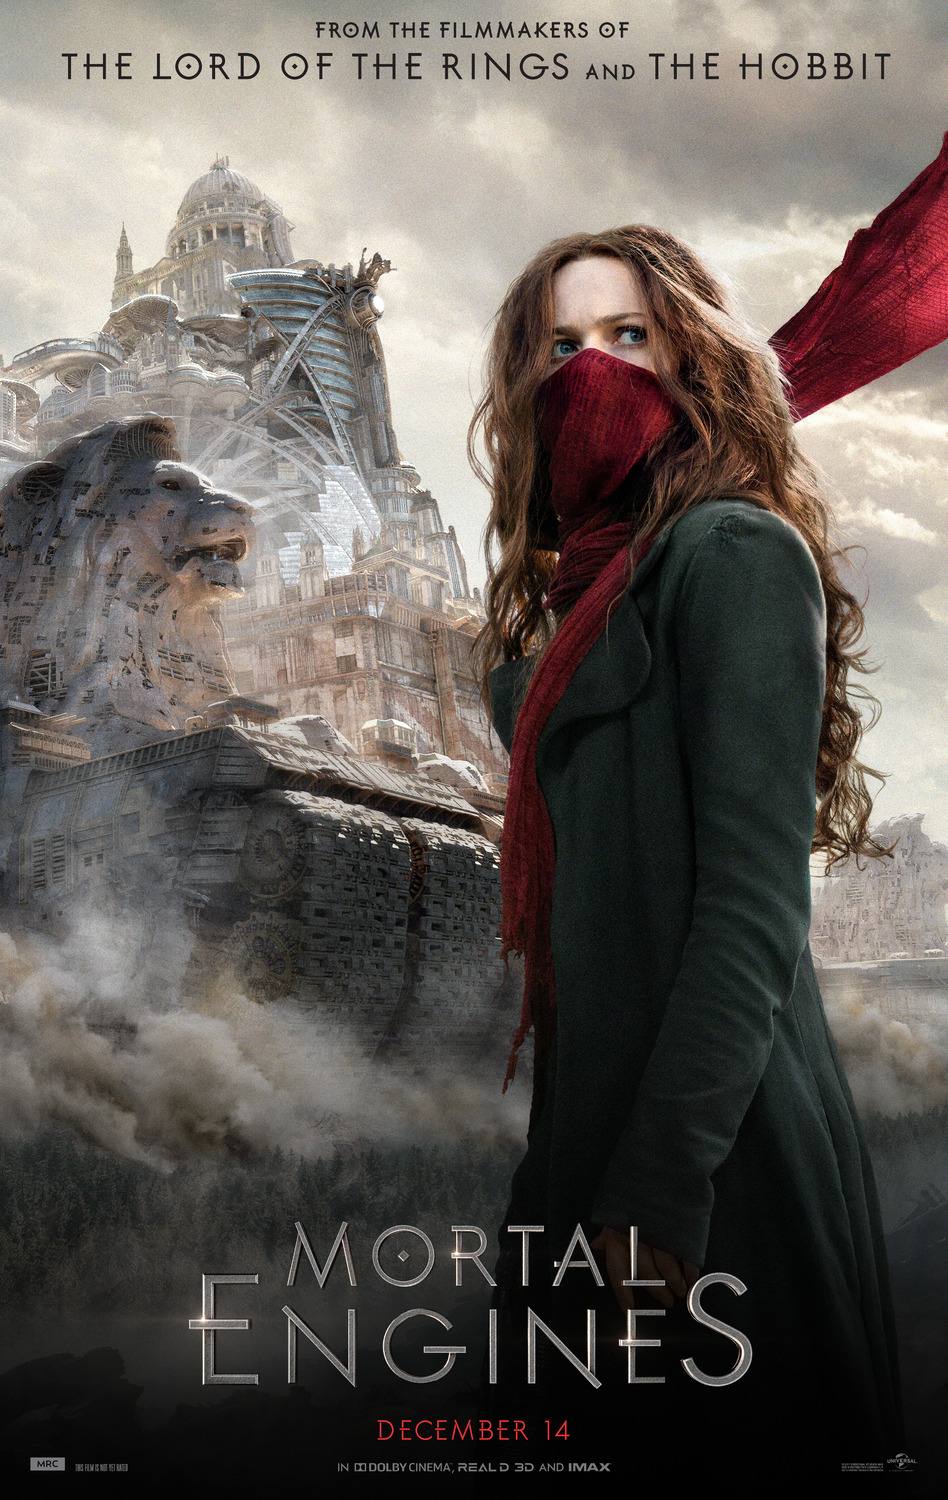 mortal engines full movie download fzmovies.net